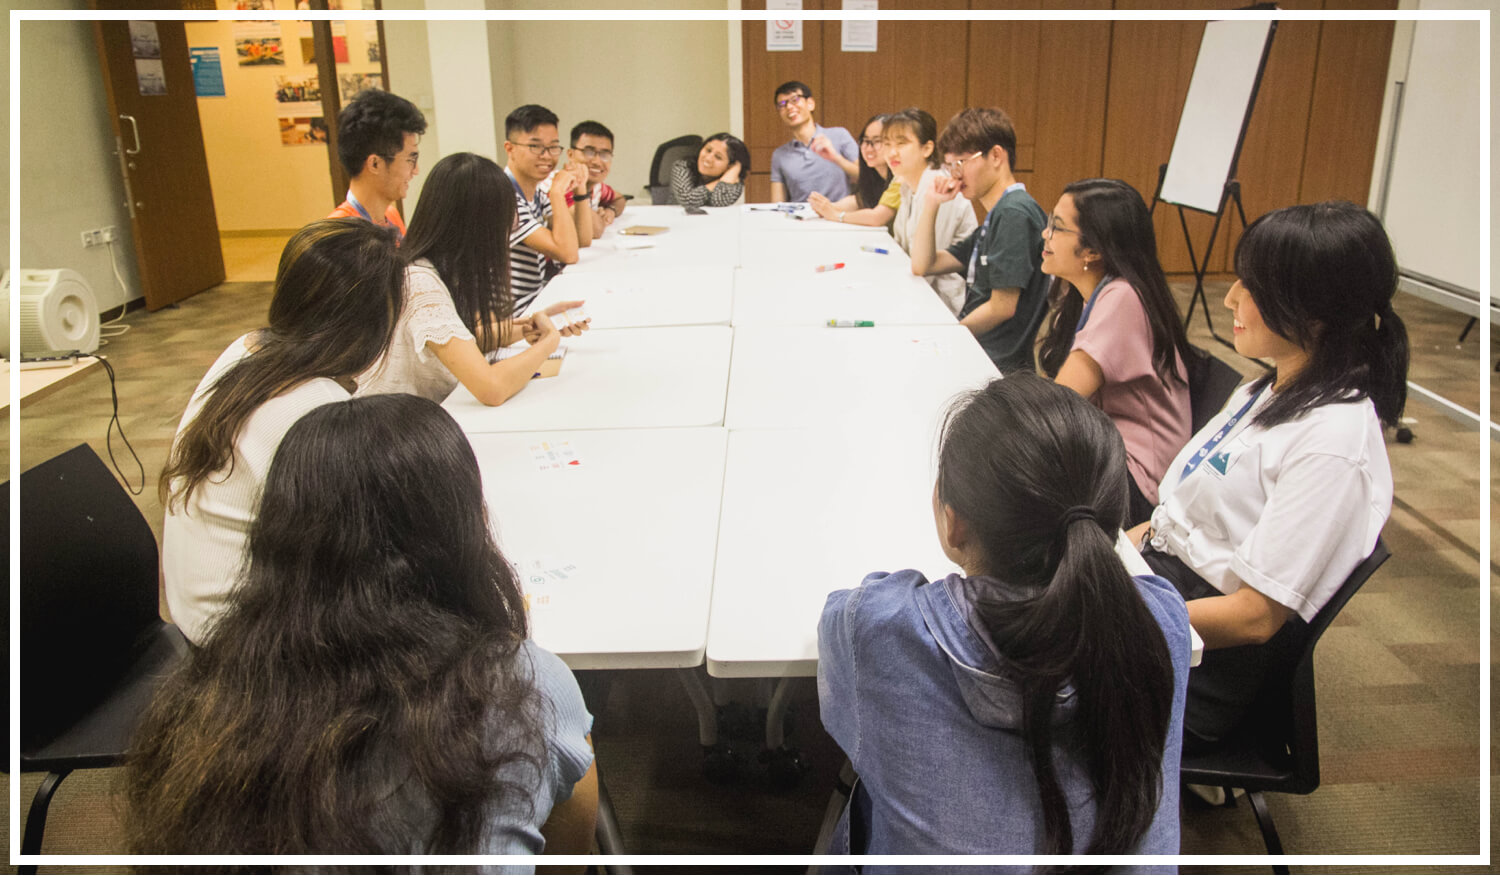 and let the sessions begin! - Once the Groups settled into their rooms, the volunteer facilitators kicked off the Conversation!With each delegate picking their own word (specifying the story they were going to tell), the rooms were soon filled with chatter. 💛